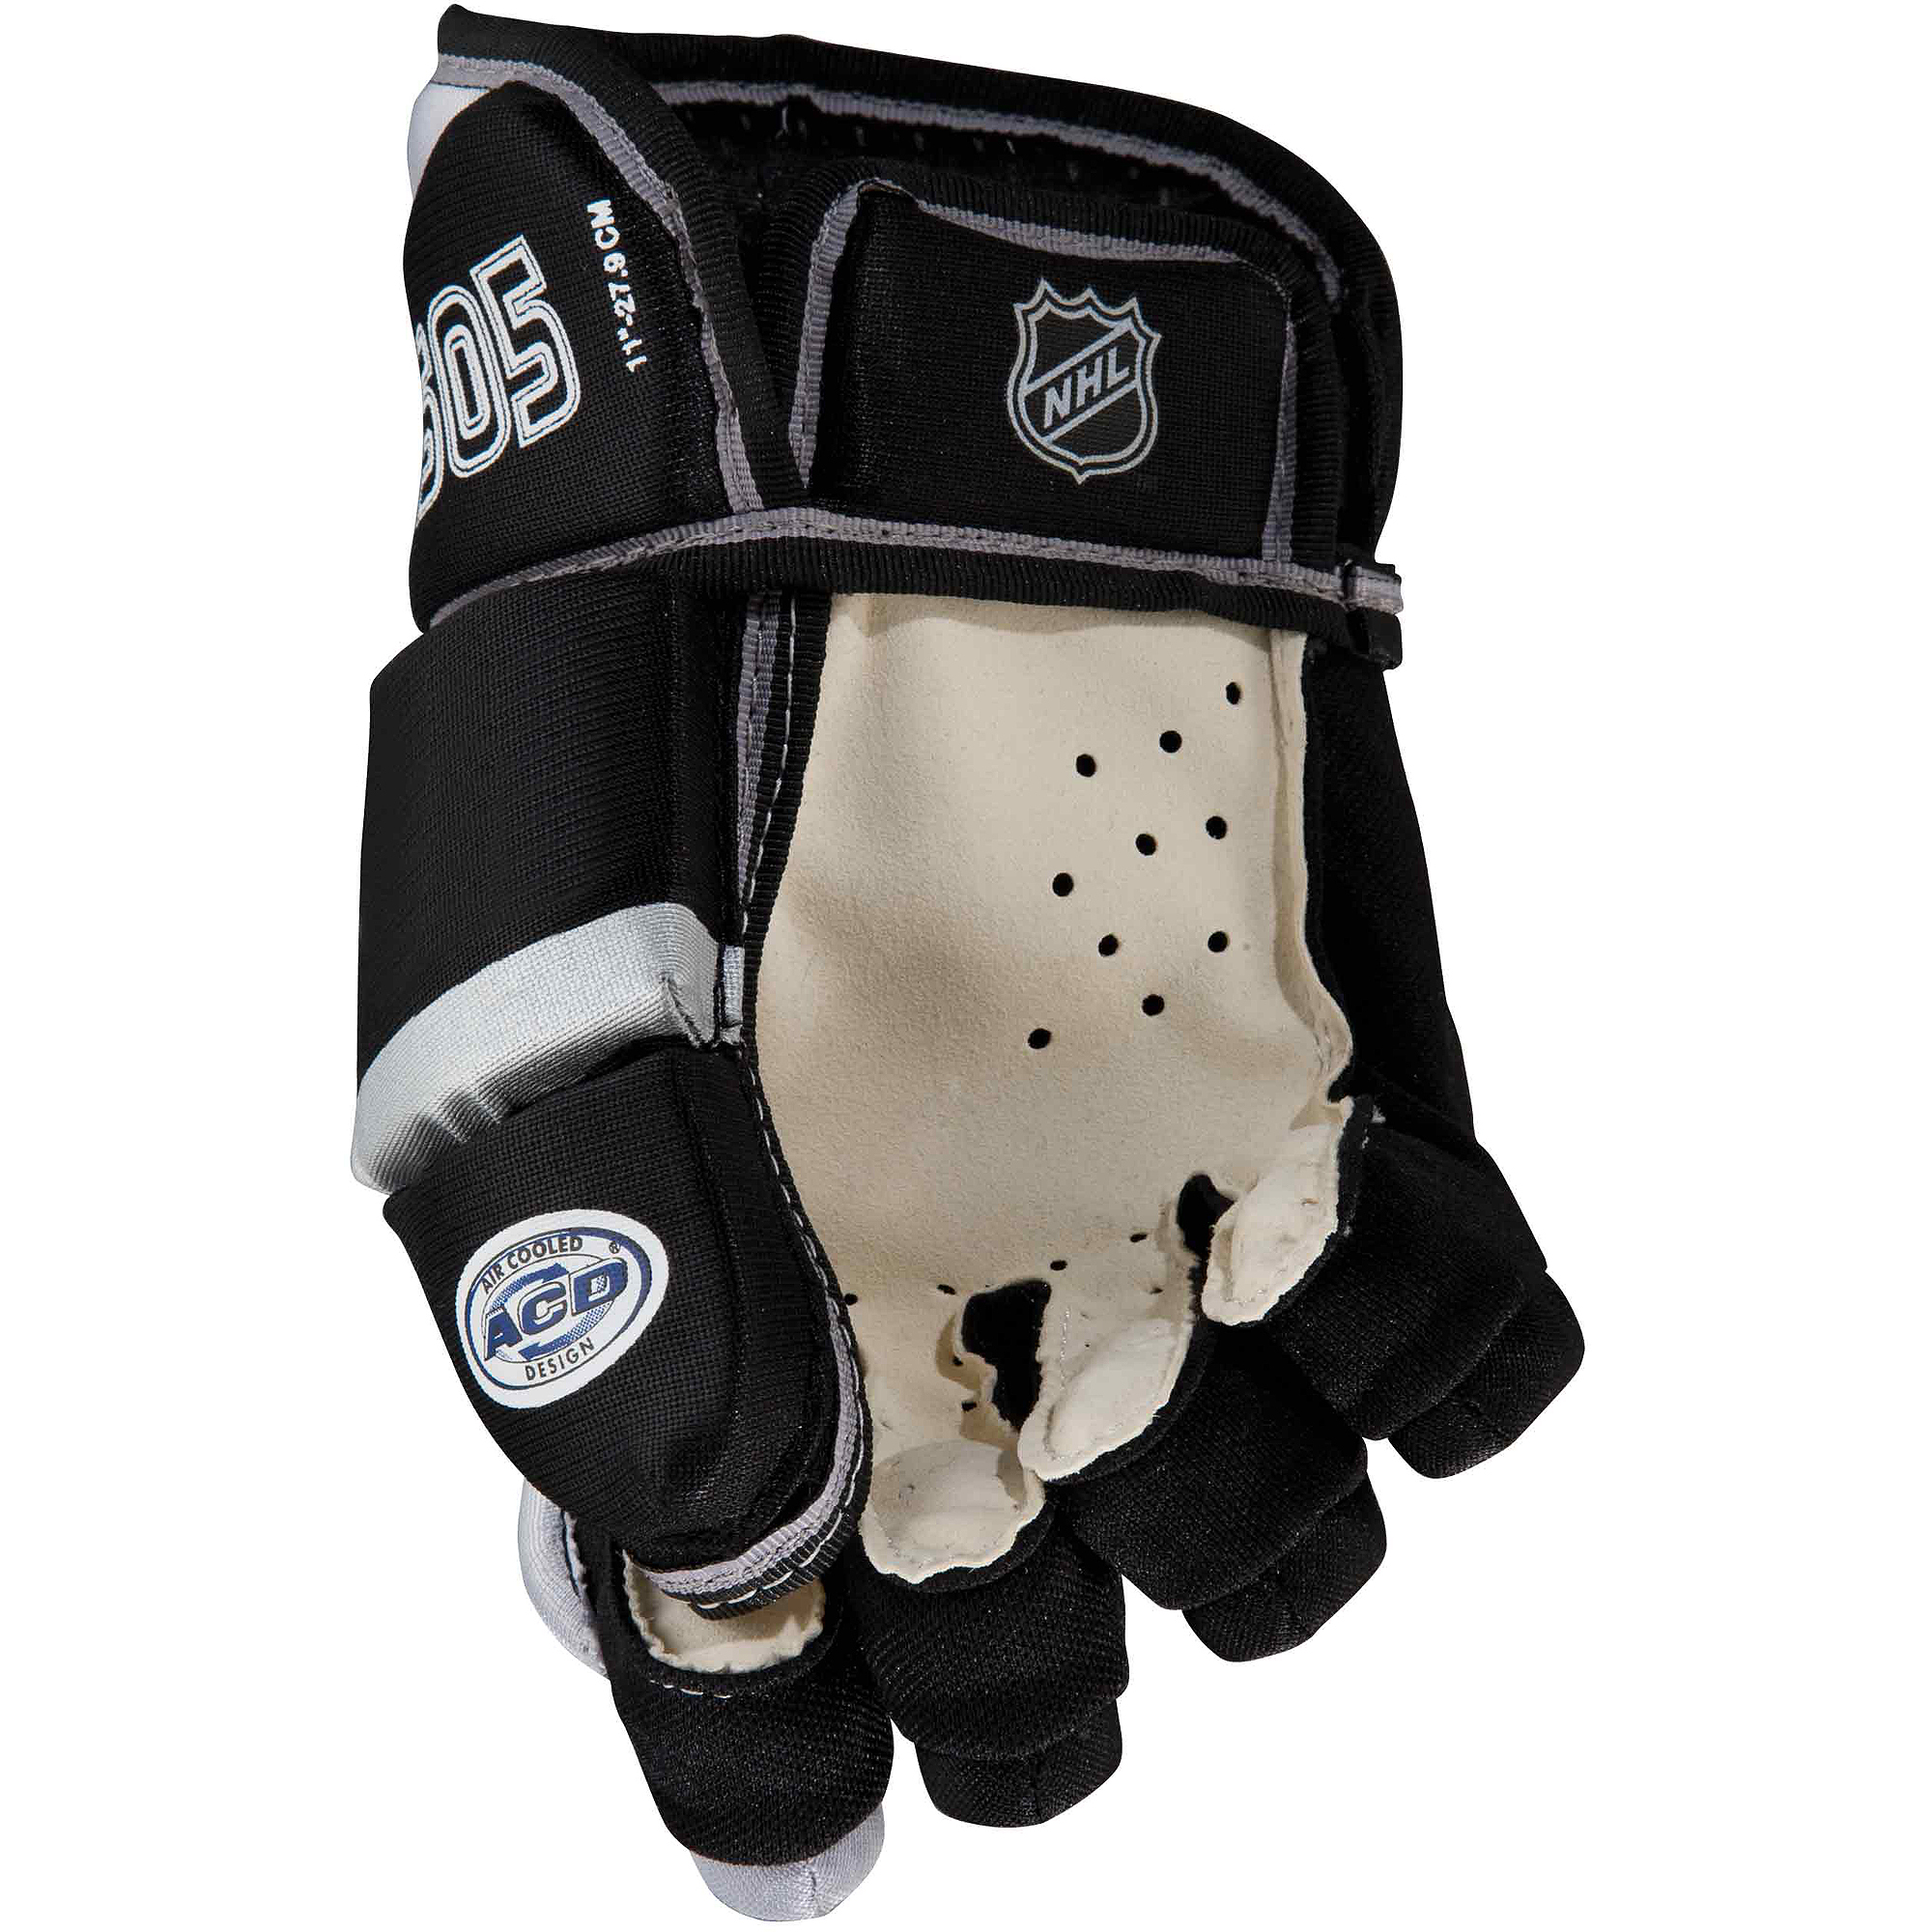 Franklin Sports NHL Sx Professional Hand Glove 1505 Sr, S/M, 13""